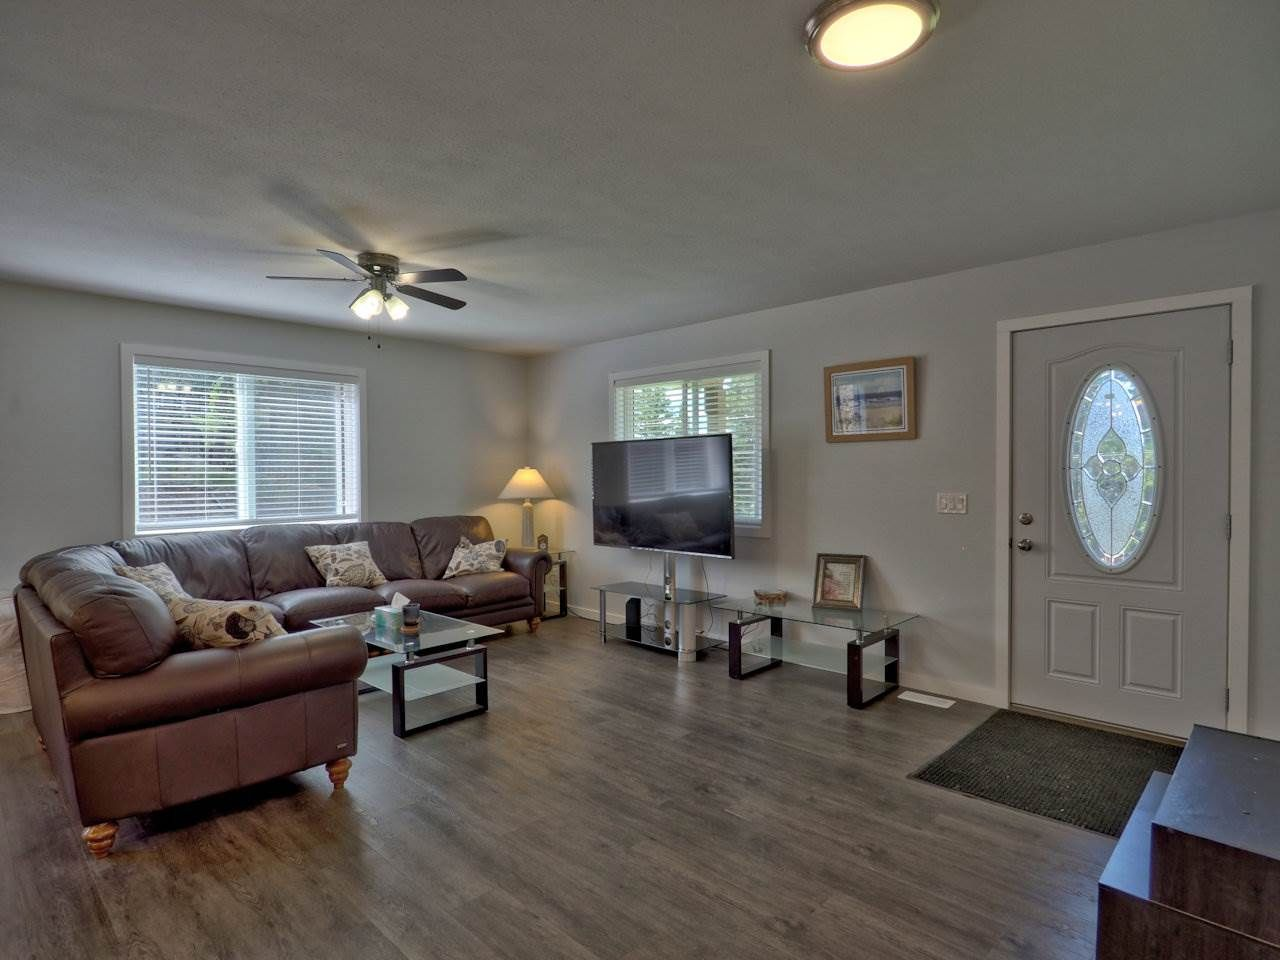 Photo 7: Photos: 4915 KITWANGA Drive in 108 Mile Ranch: 108 Ranch House for sale (100 Mile House (Zone 10))  : MLS®# R2481177